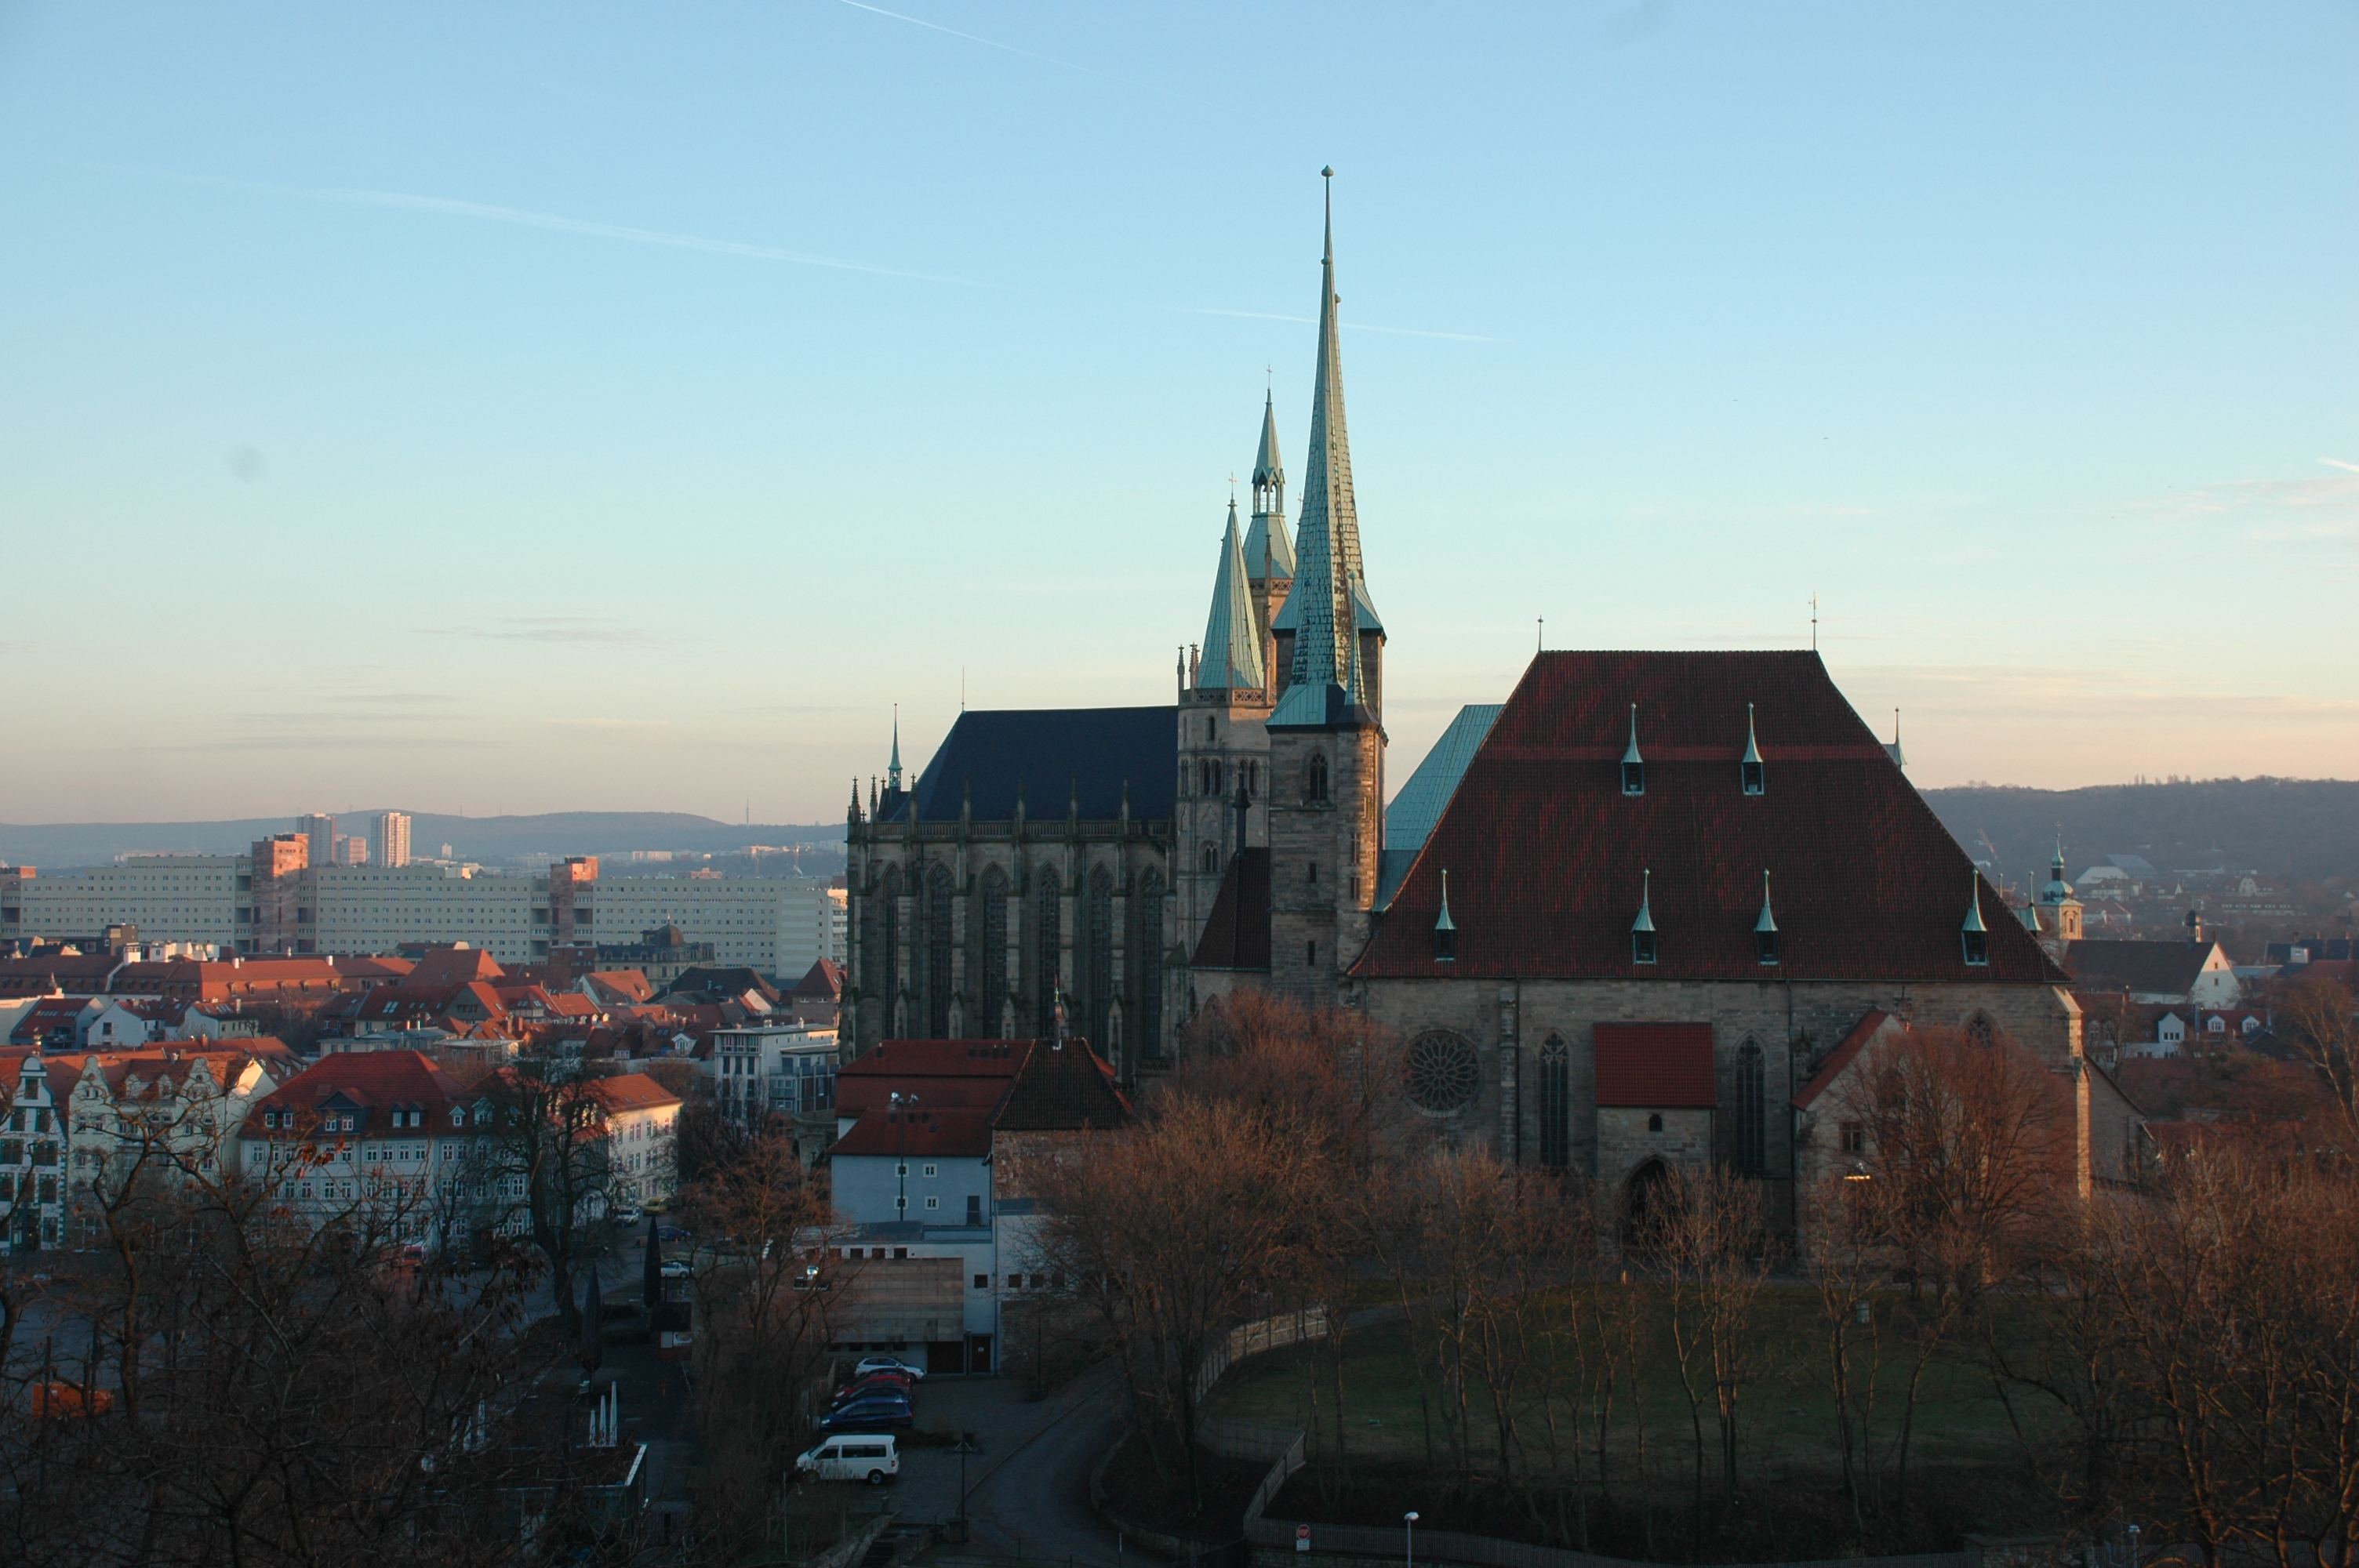 Germany is bordered by the baltic and north seas, denmark to the north, poland and the czech republic to the east,. Erfurt - Town in Germany - Thousand Wonders